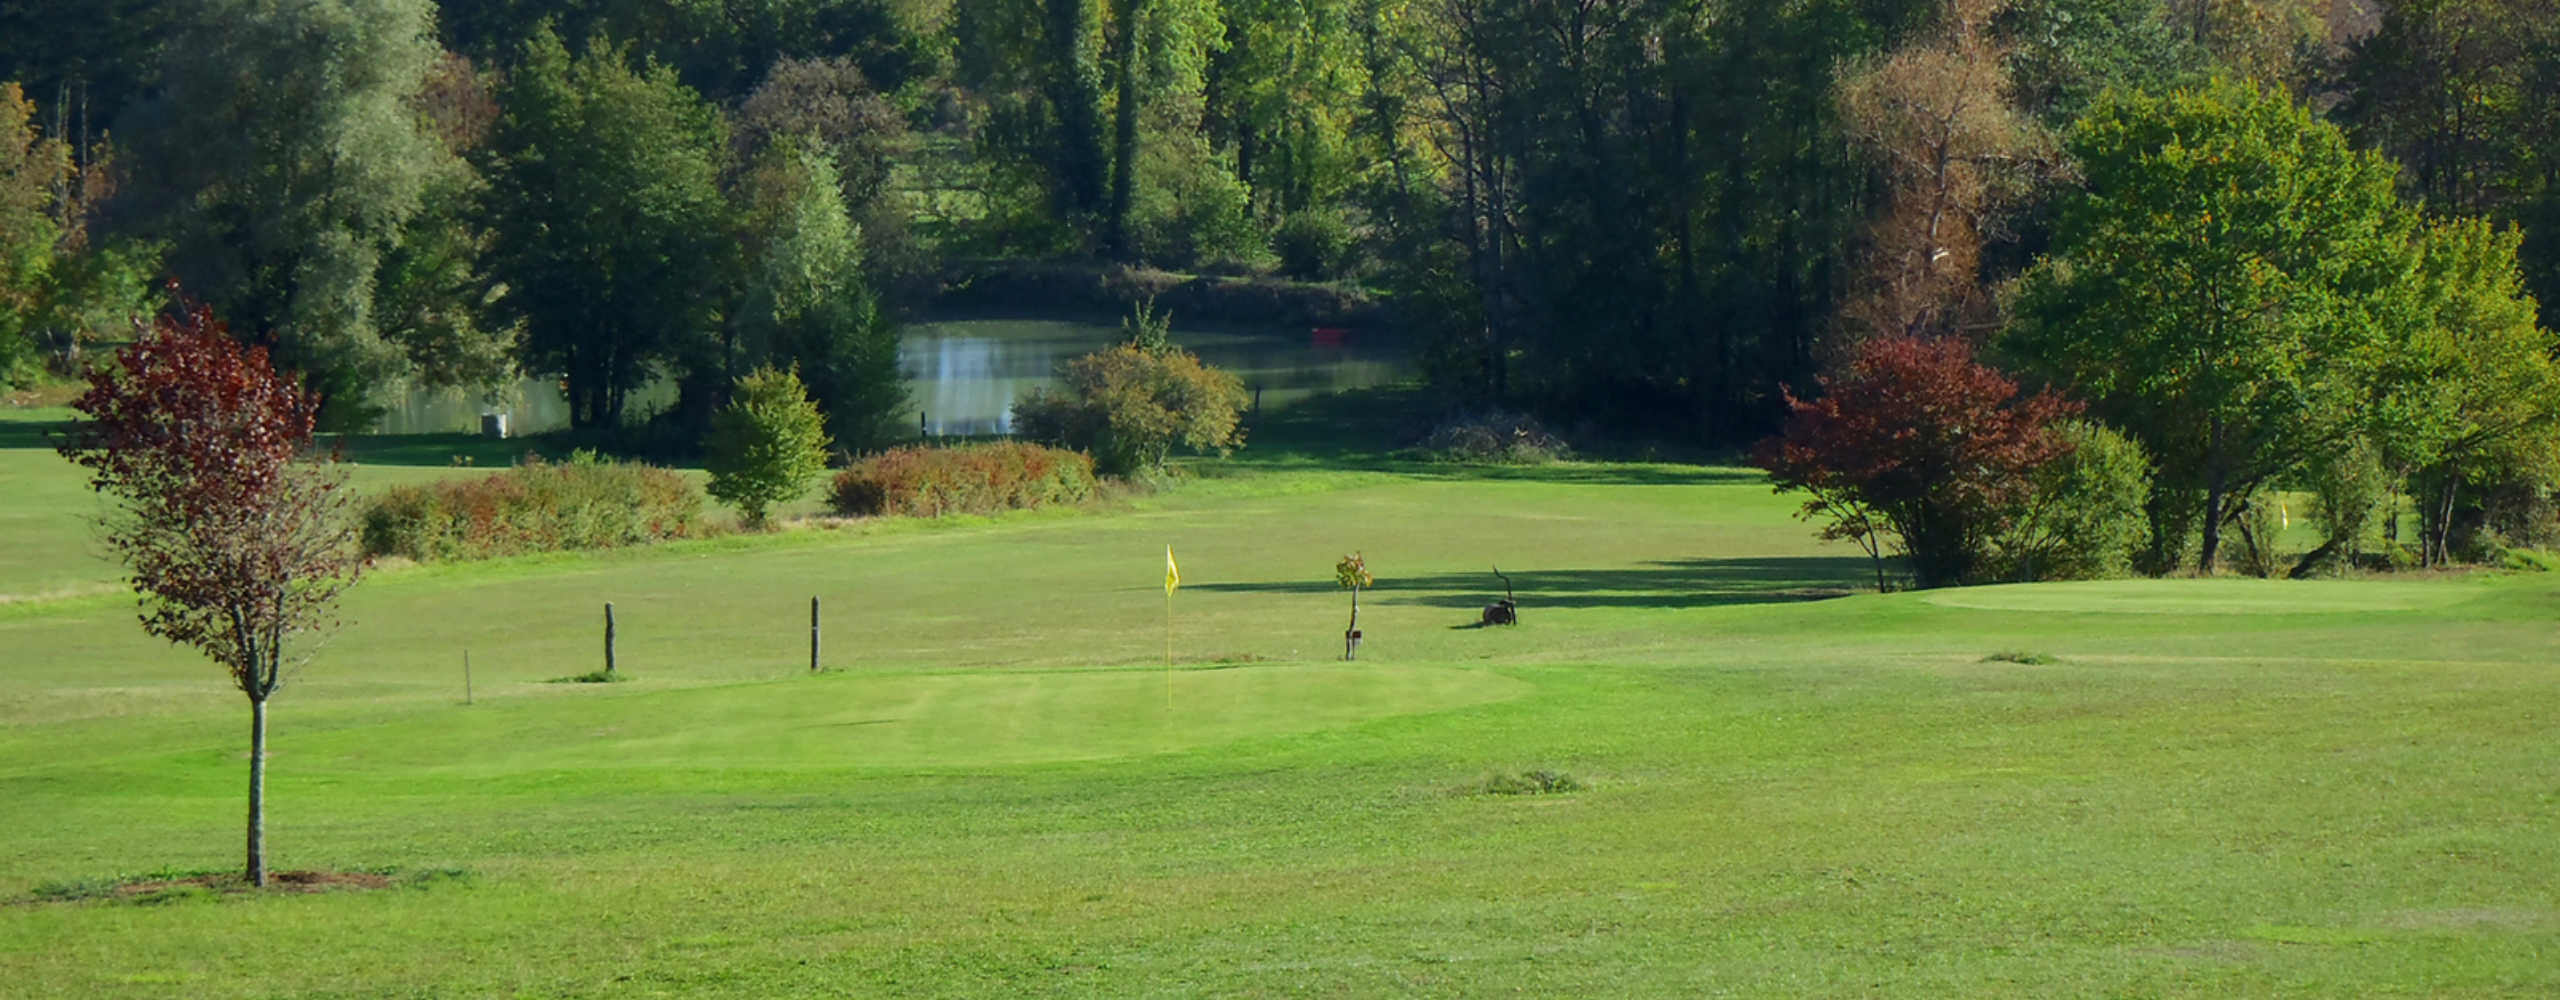 stmeard-accueil Official website of the Departmental Golf Committee of Dordogne